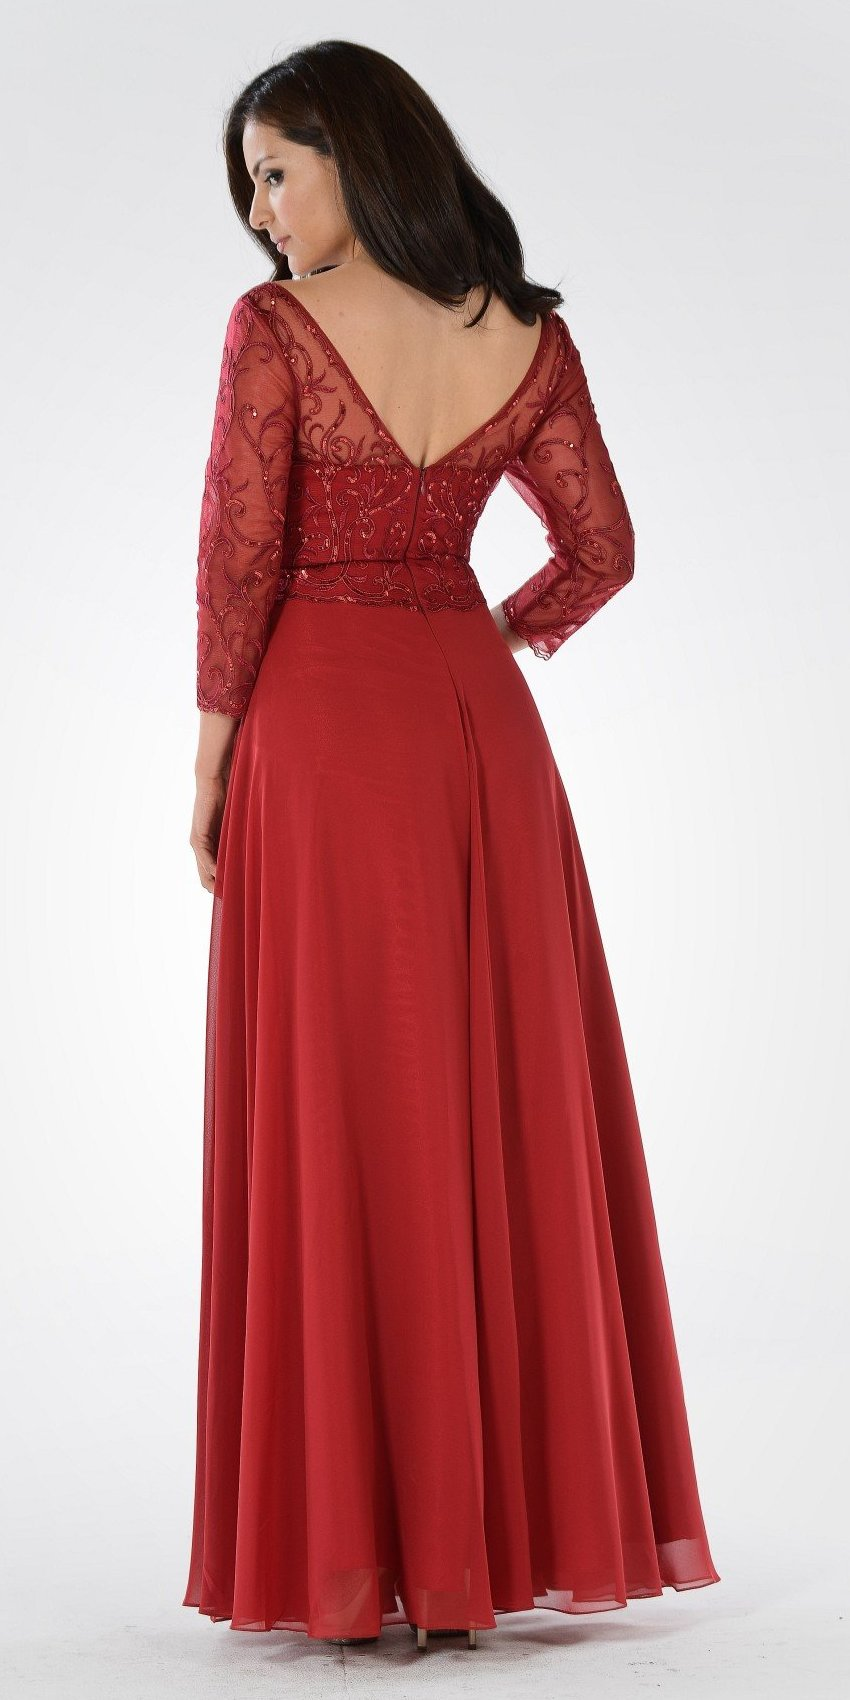 d41c861b45 Poly USA 7808 Burgundy V-Neck Mid Sleeves Lace Top A-Line Formal ...